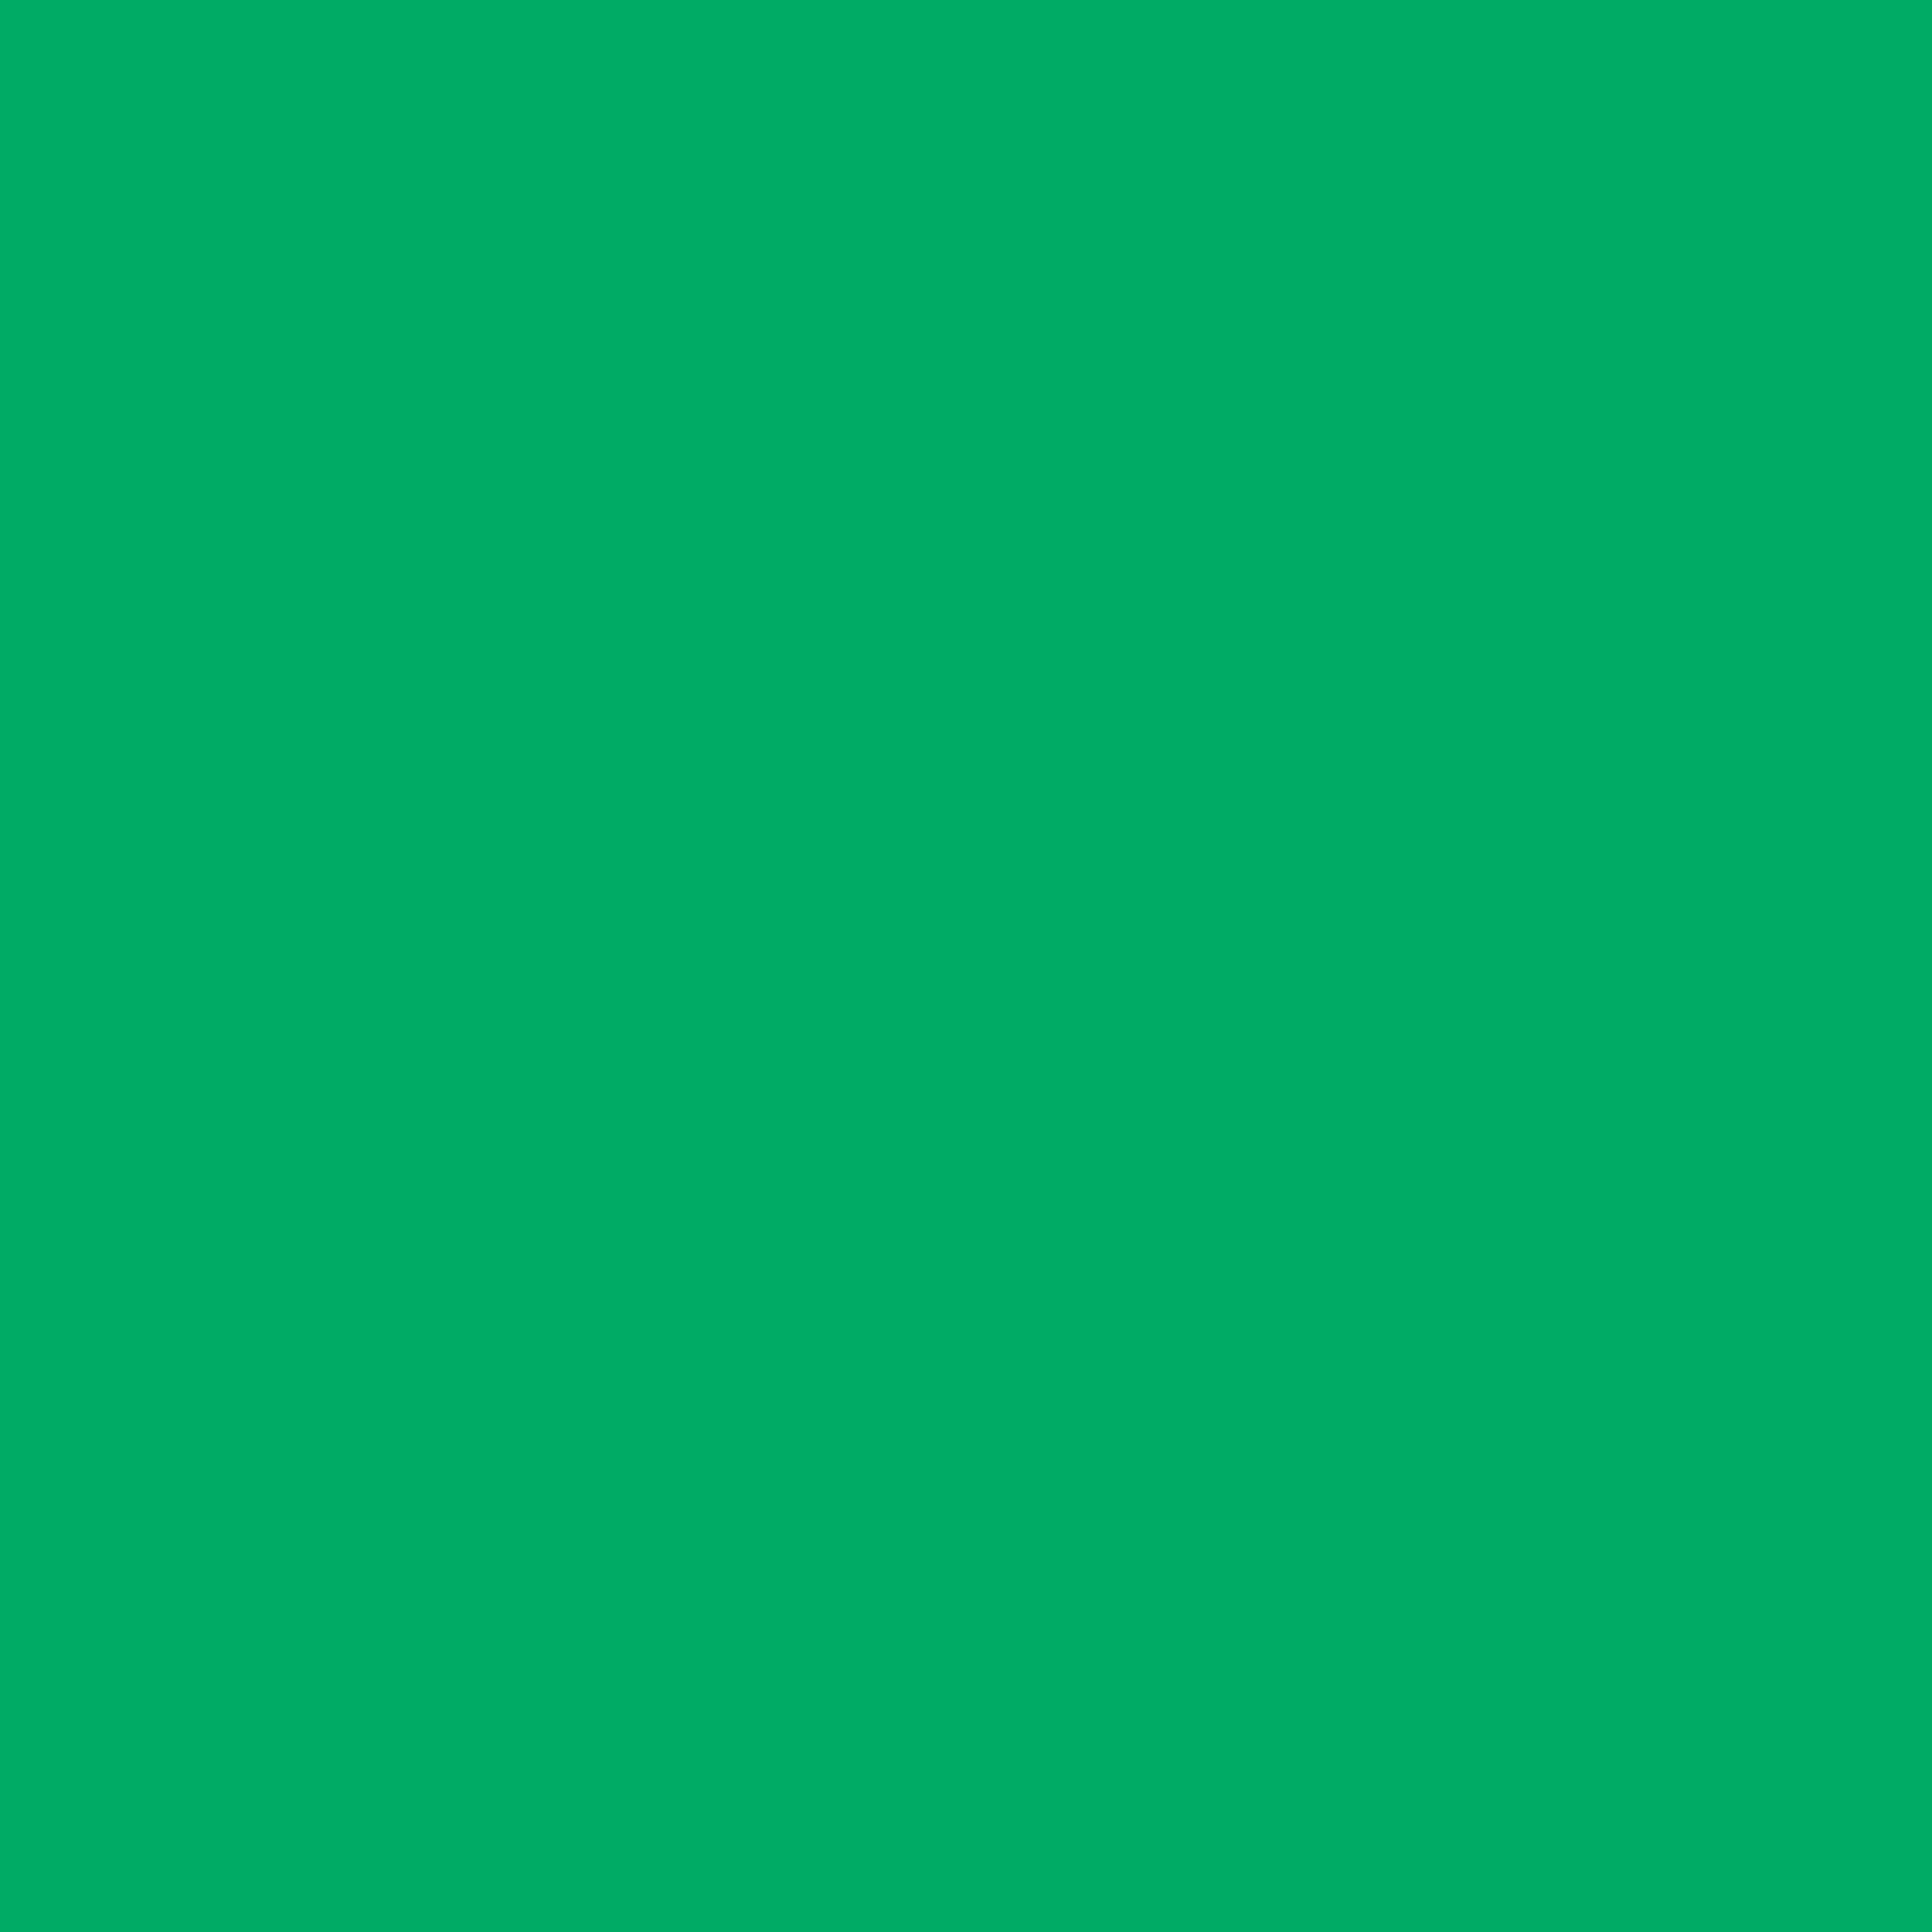 2732x2732 GO Green Solid Color Background